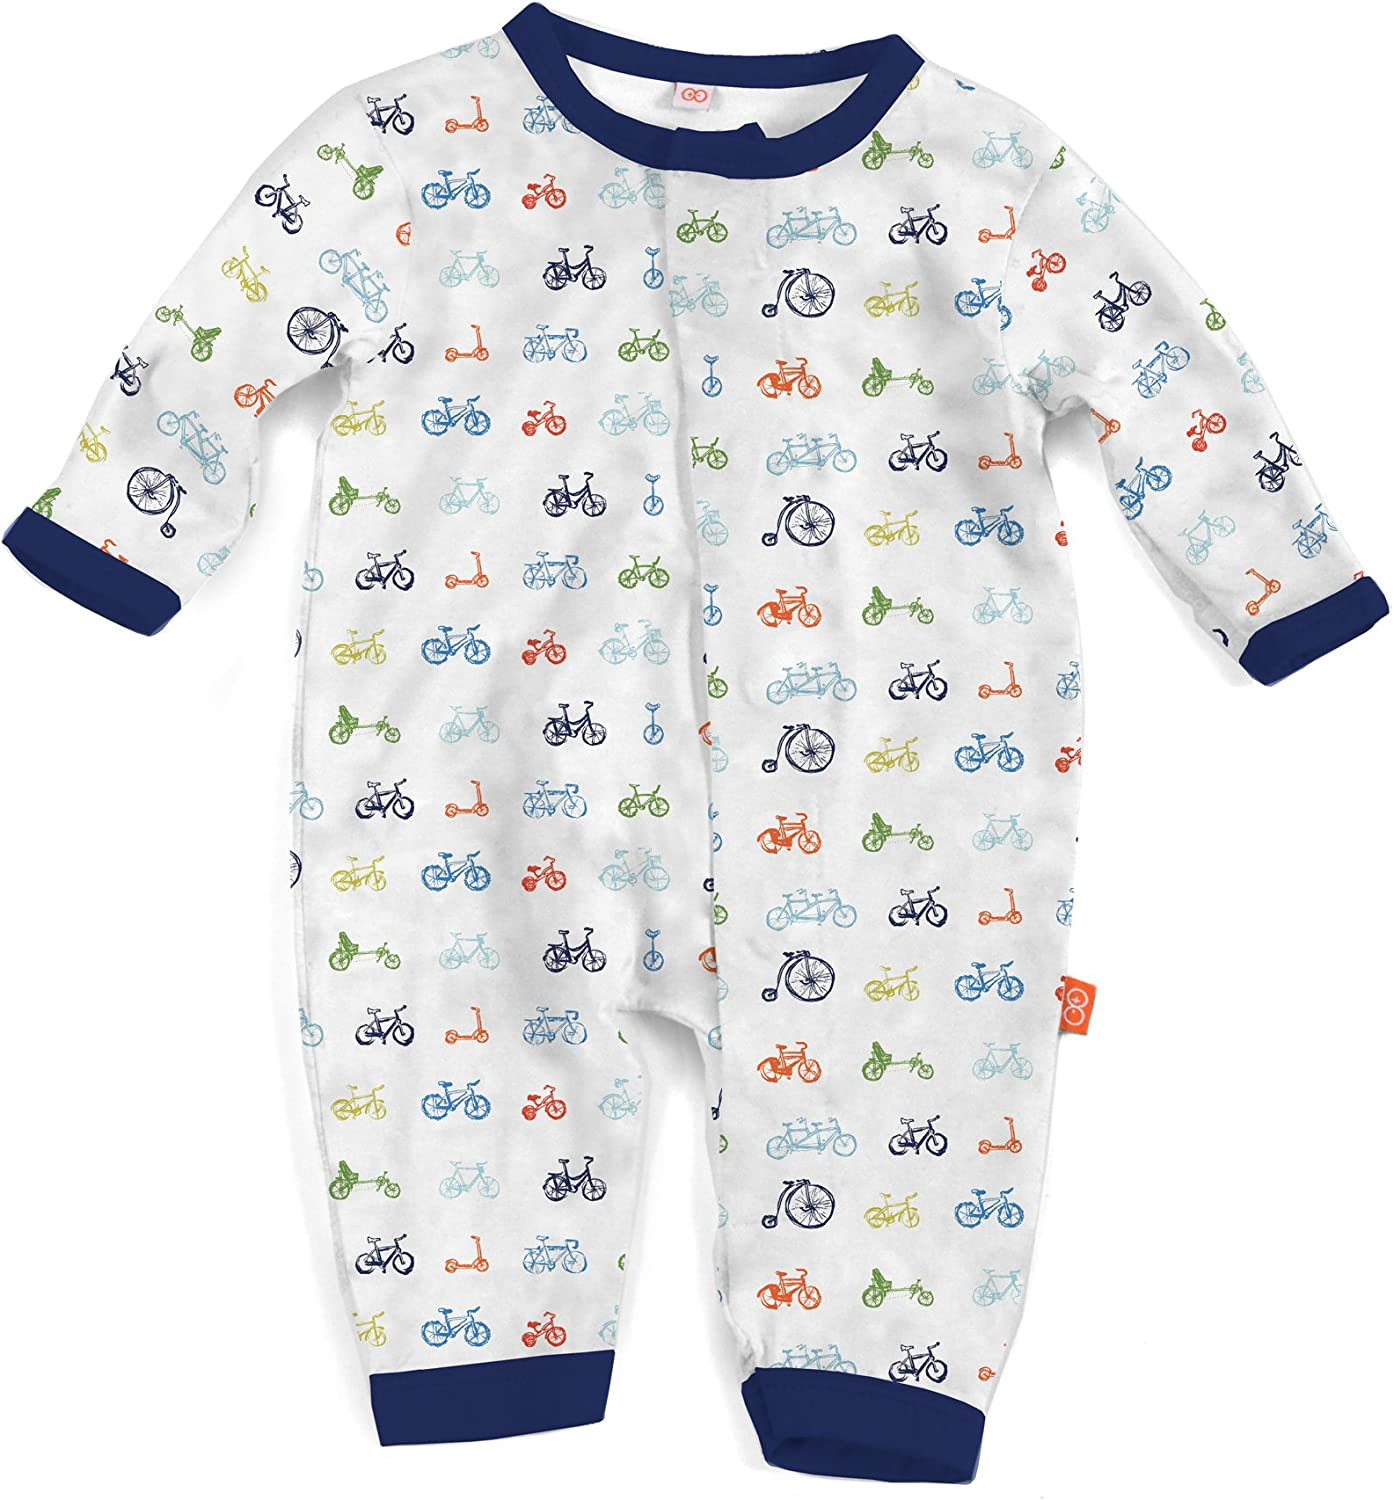 Magnetic Me Royal Baby of Sussex Collection Modal Baby Gown Set an Heir is Born